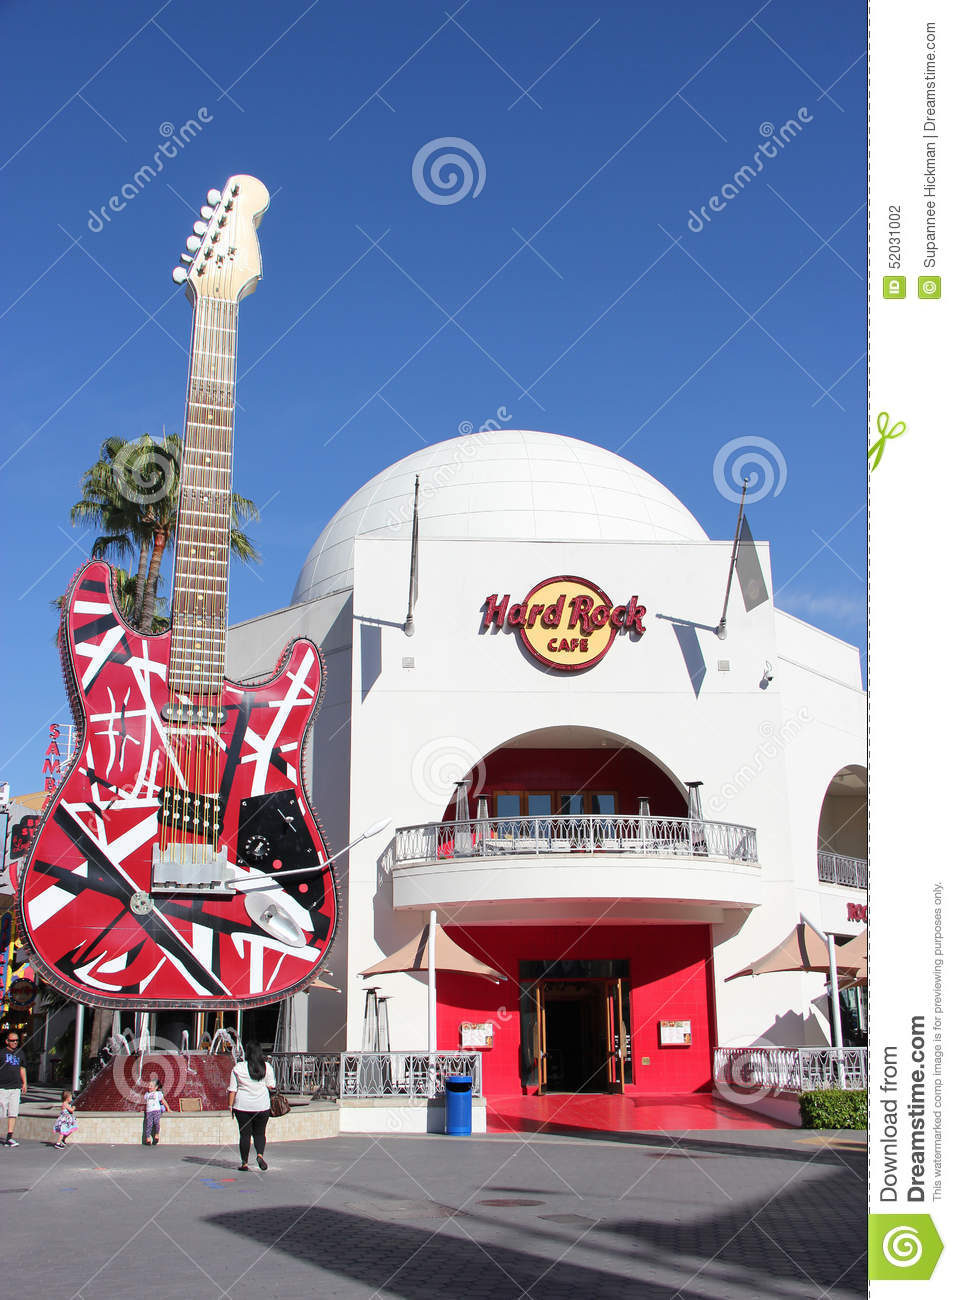 supply chain management at hard rock cafe Study 31 ch 1 flashcards from harrison h on studyblue studyblue which of the following tasks would not typically represent an operations management activity at hard rock cafe in general, the supply chain starts with.